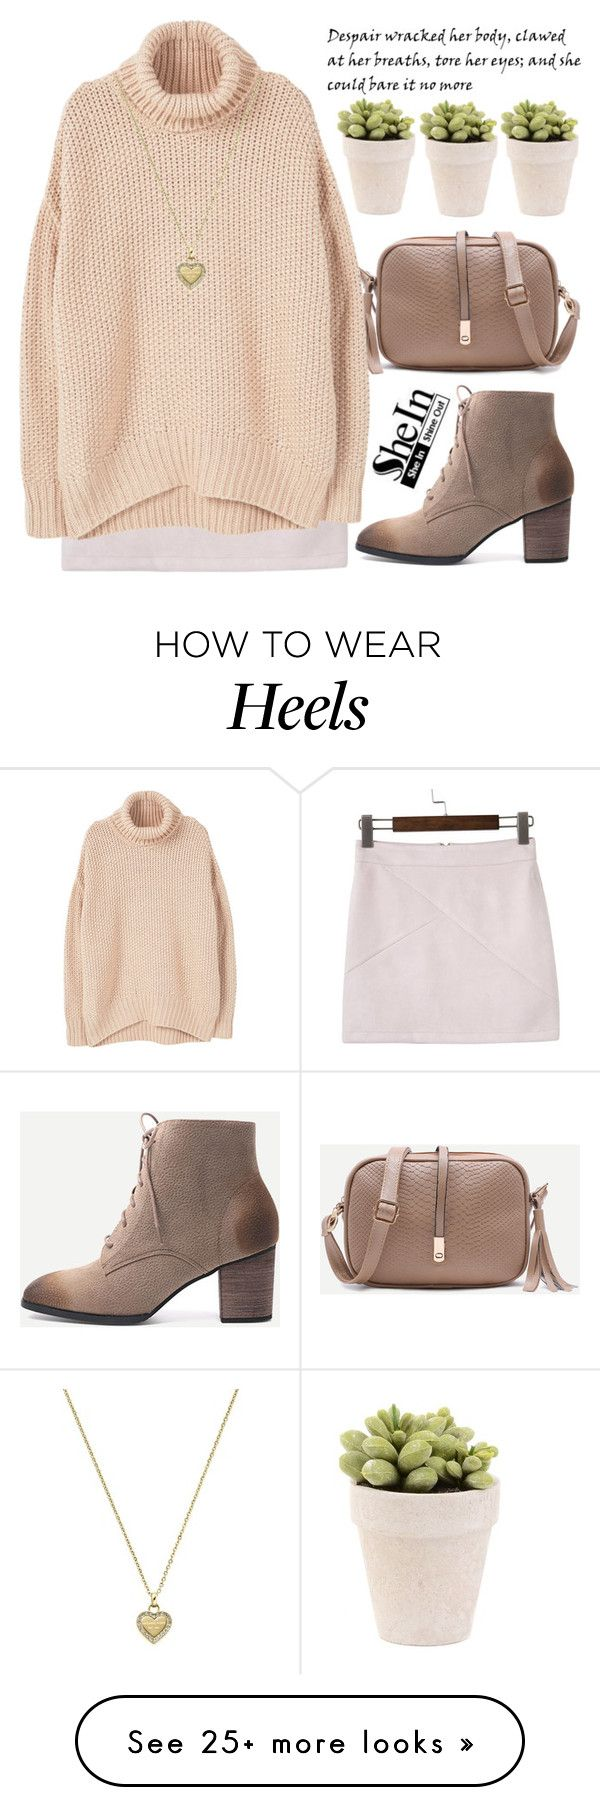 """""""She could bare it no more!"""" by amilla-top on Polyvore featuring MANGO and Michael Kors"""